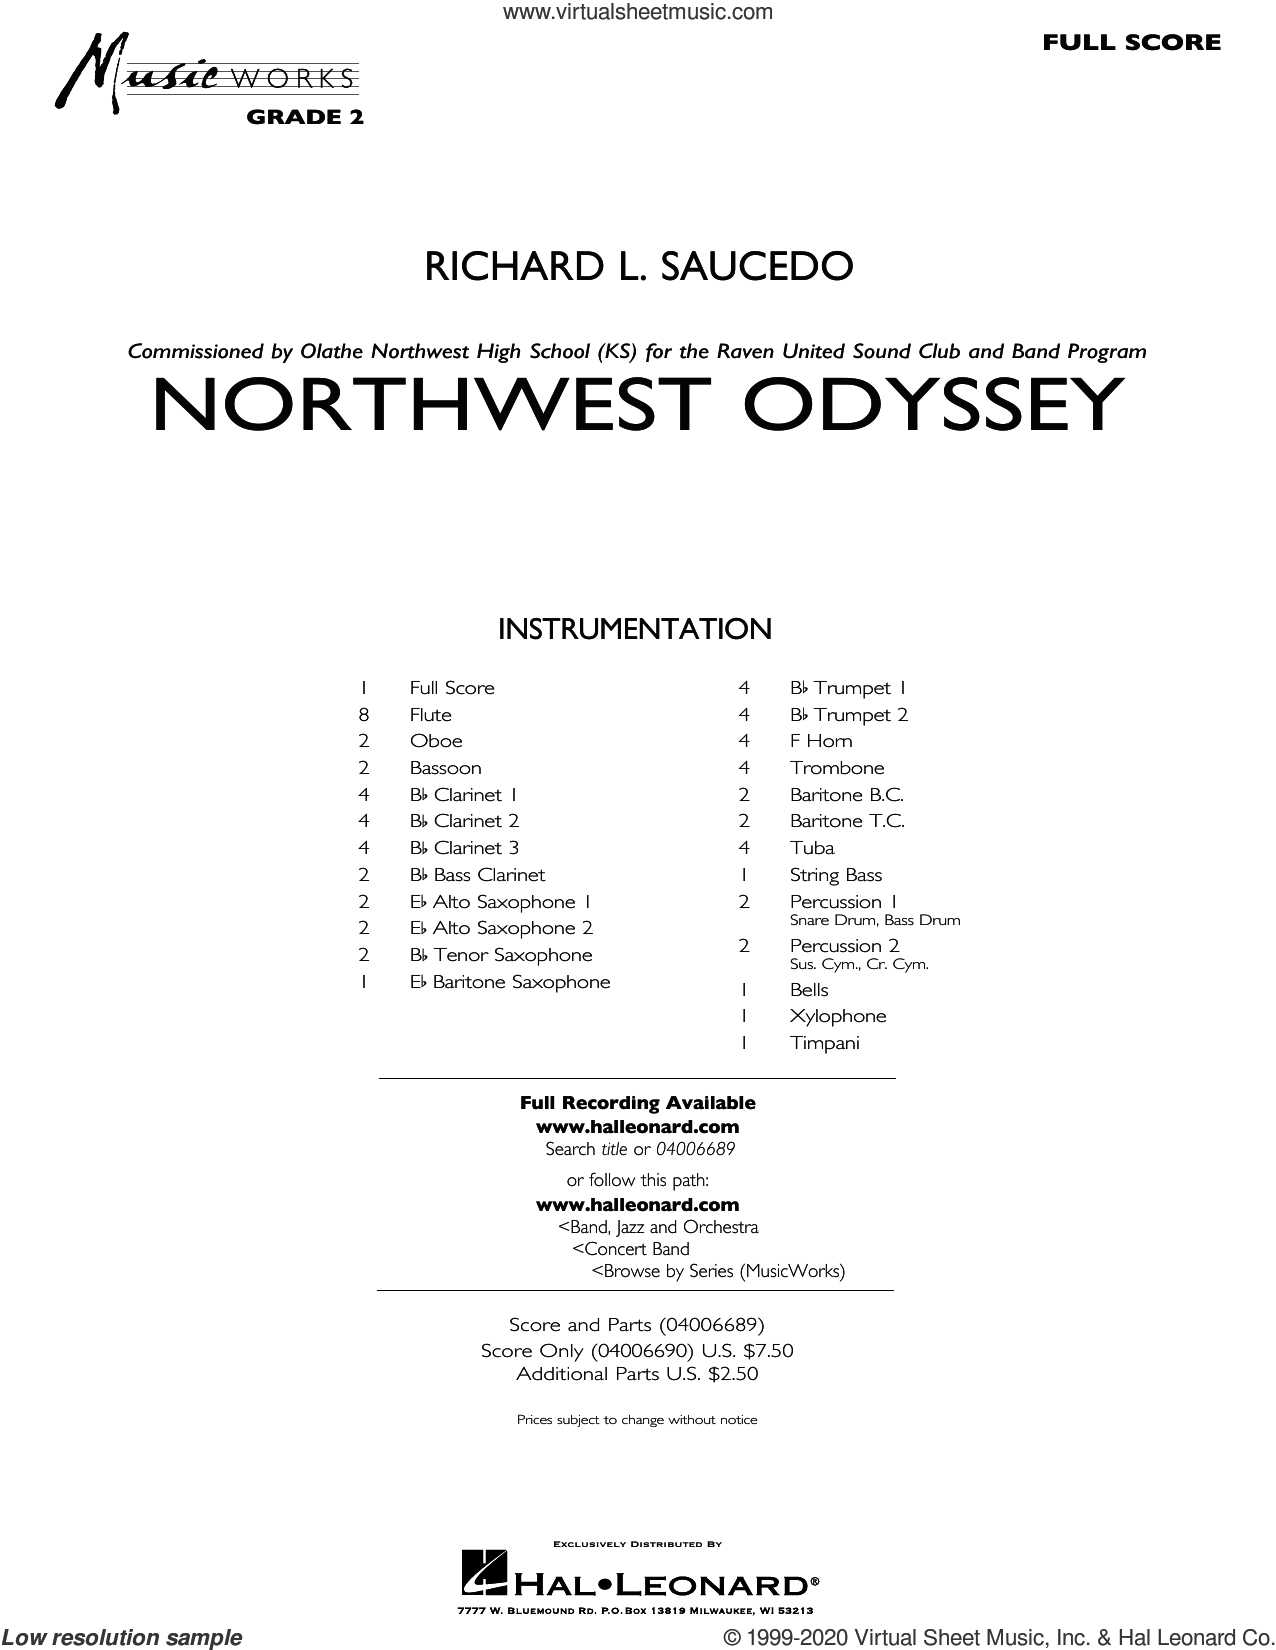 Northwest Odyssey (COMPLETE) sheet music for concert band by Richard L. Saucedo, intermediate skill level